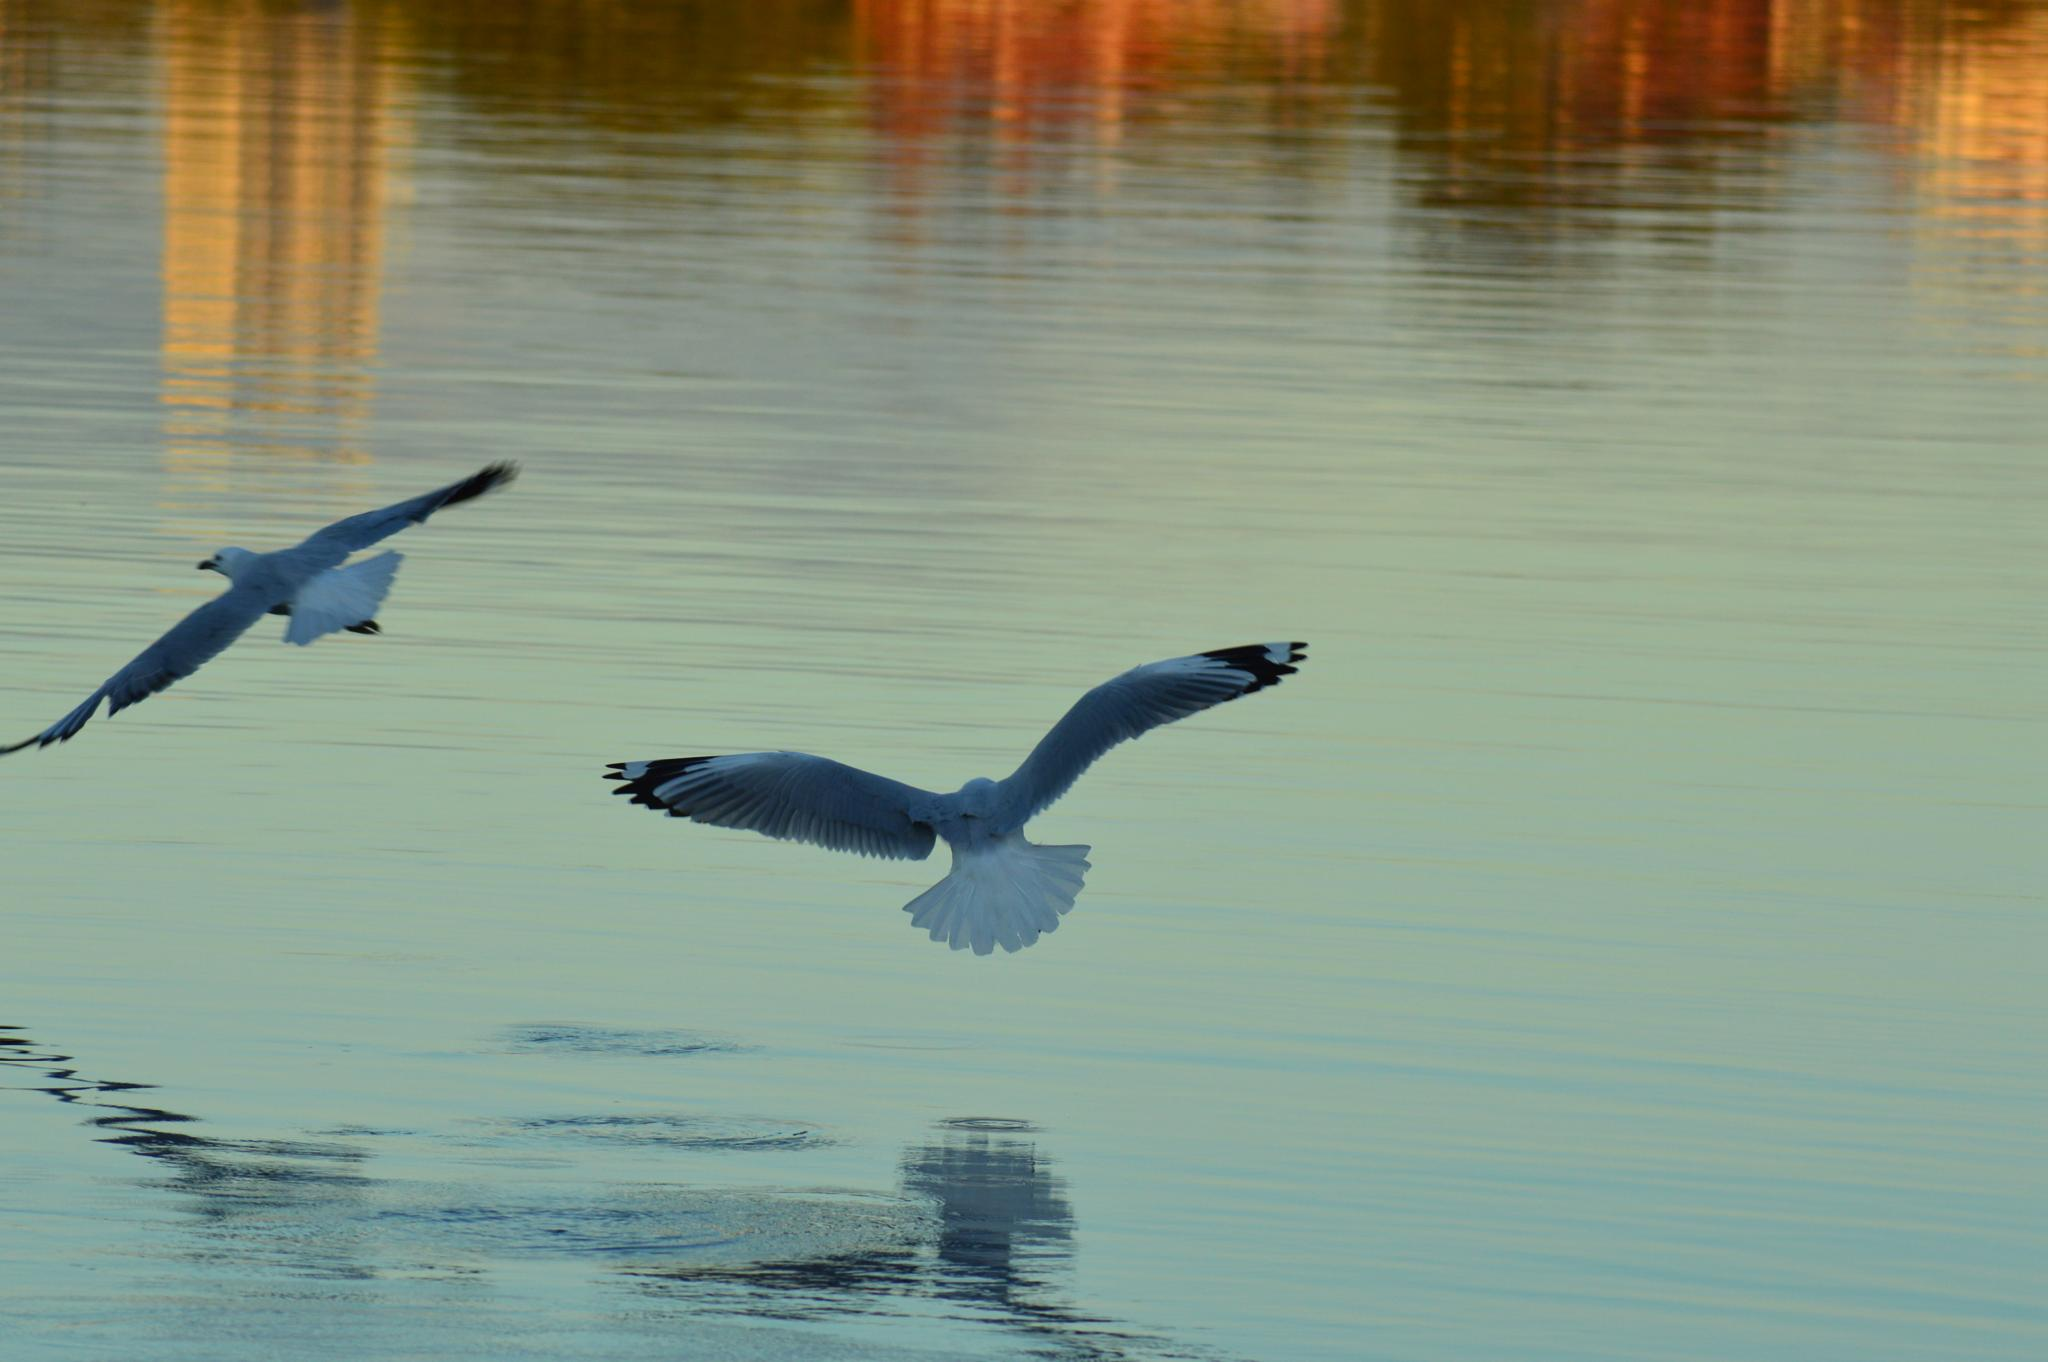 The chase. by mark.eatwell.3